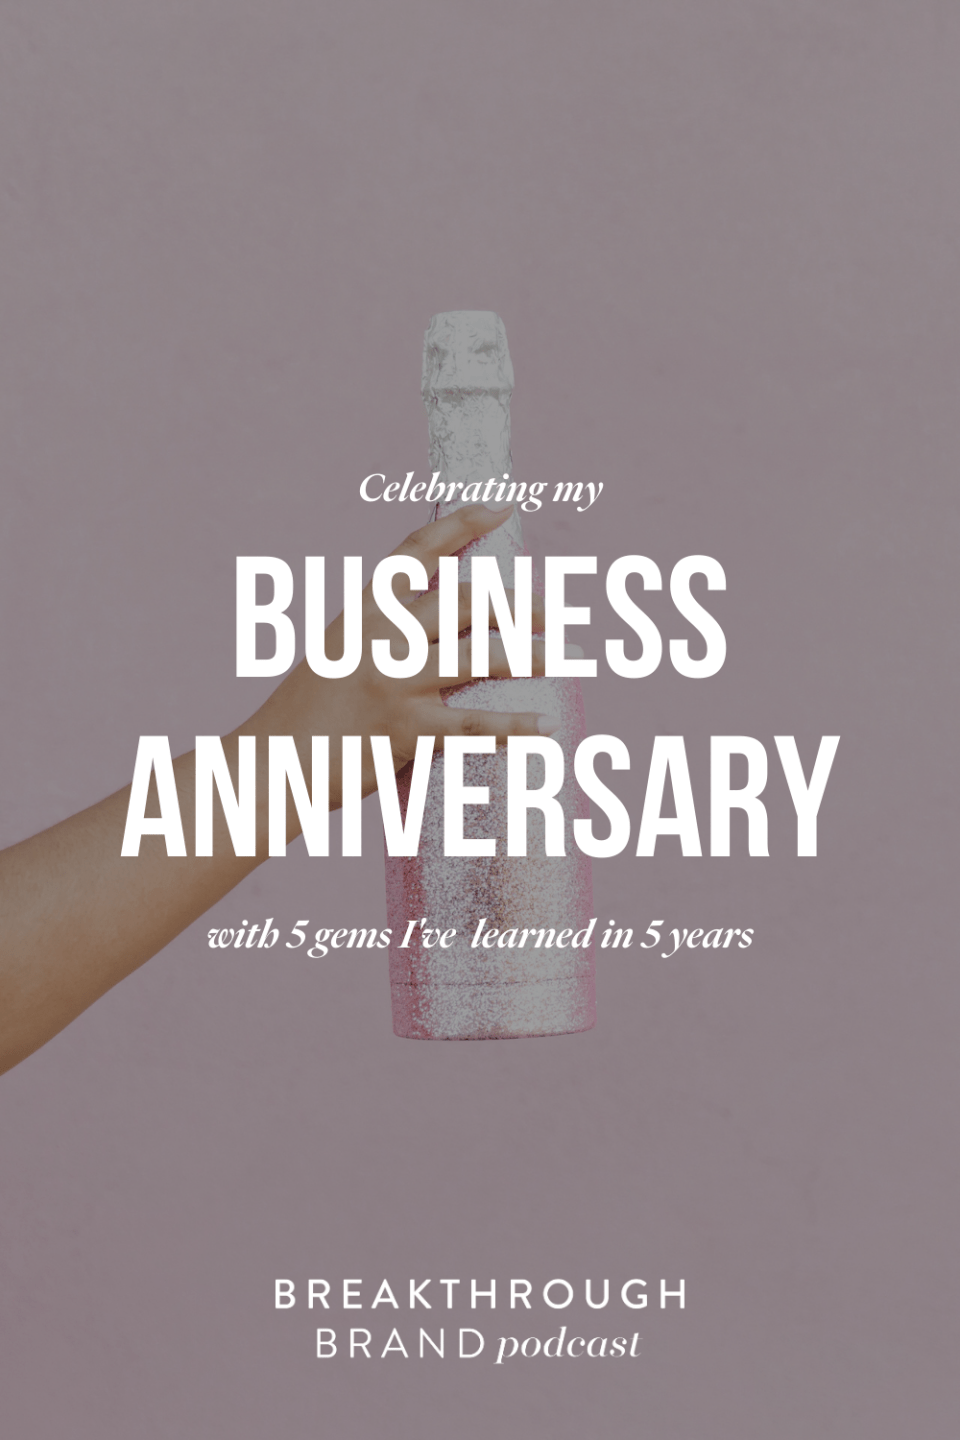 Celebrating 5 years in business with 5 lessons I have learned over the years with Elizabeth McCravy on the Breakthrough Brand Podcast.